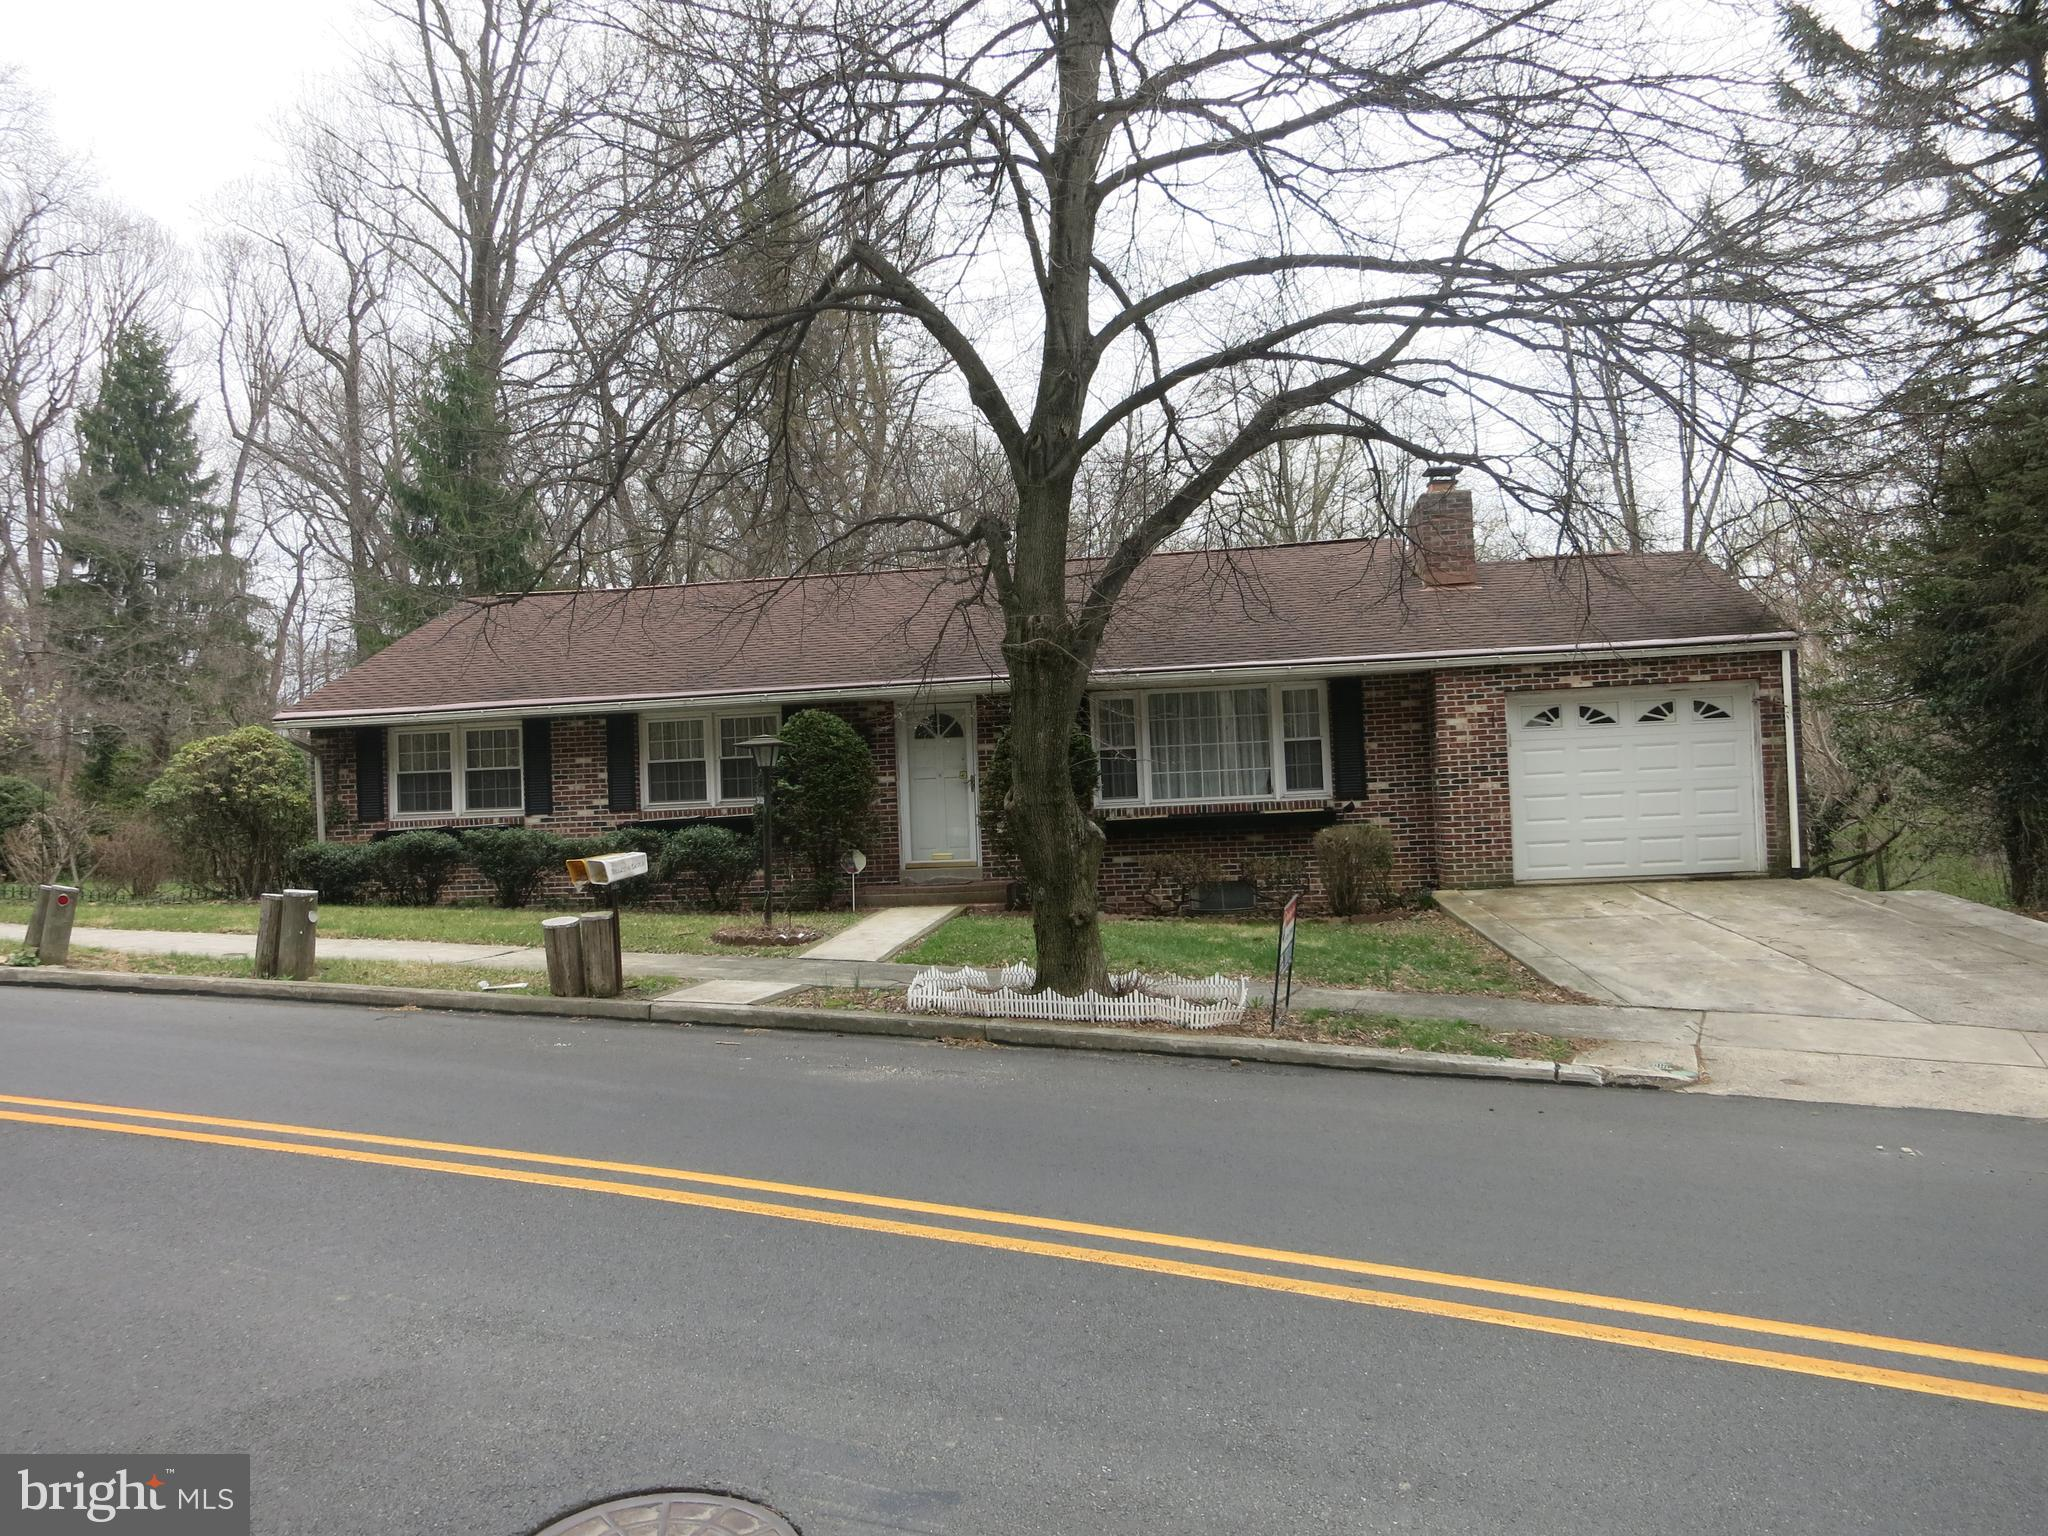 2020 HILL ROAD, READING, PA 19602